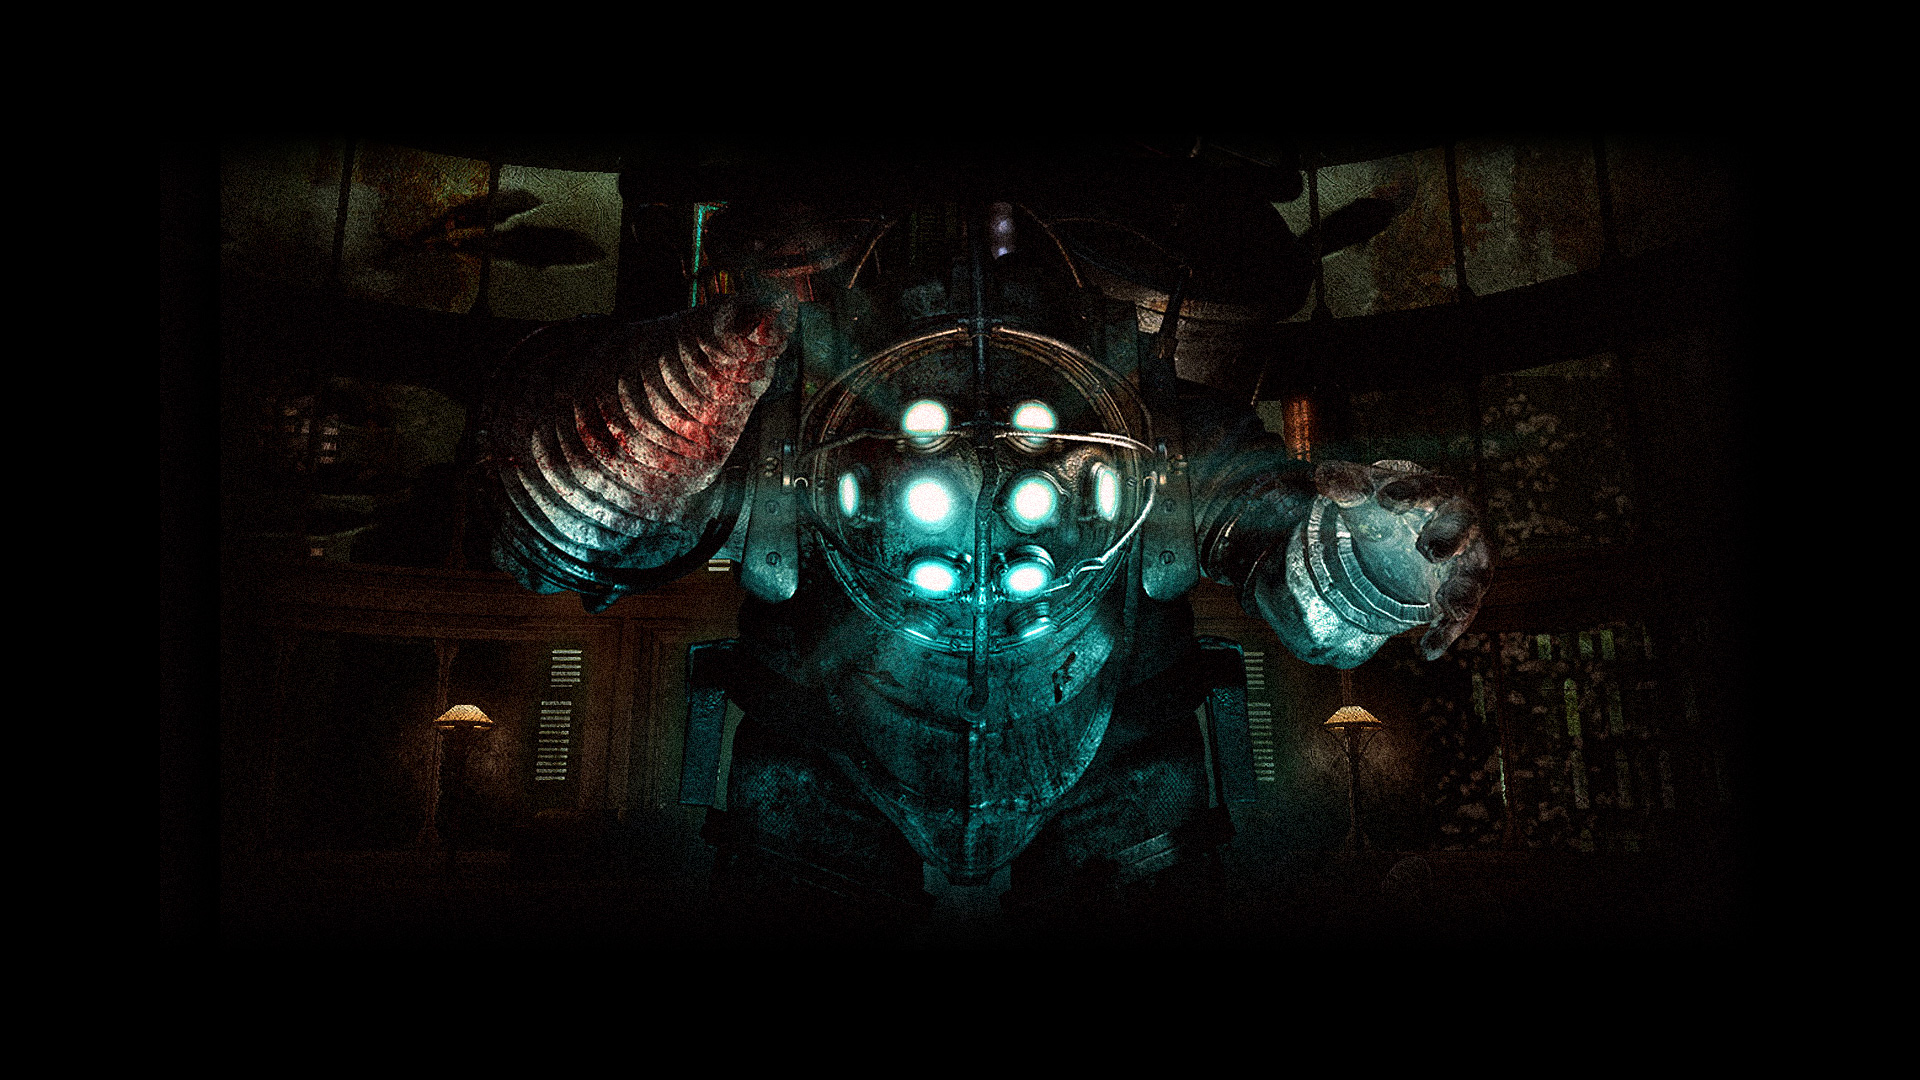 bioshock wallpapers hd free download